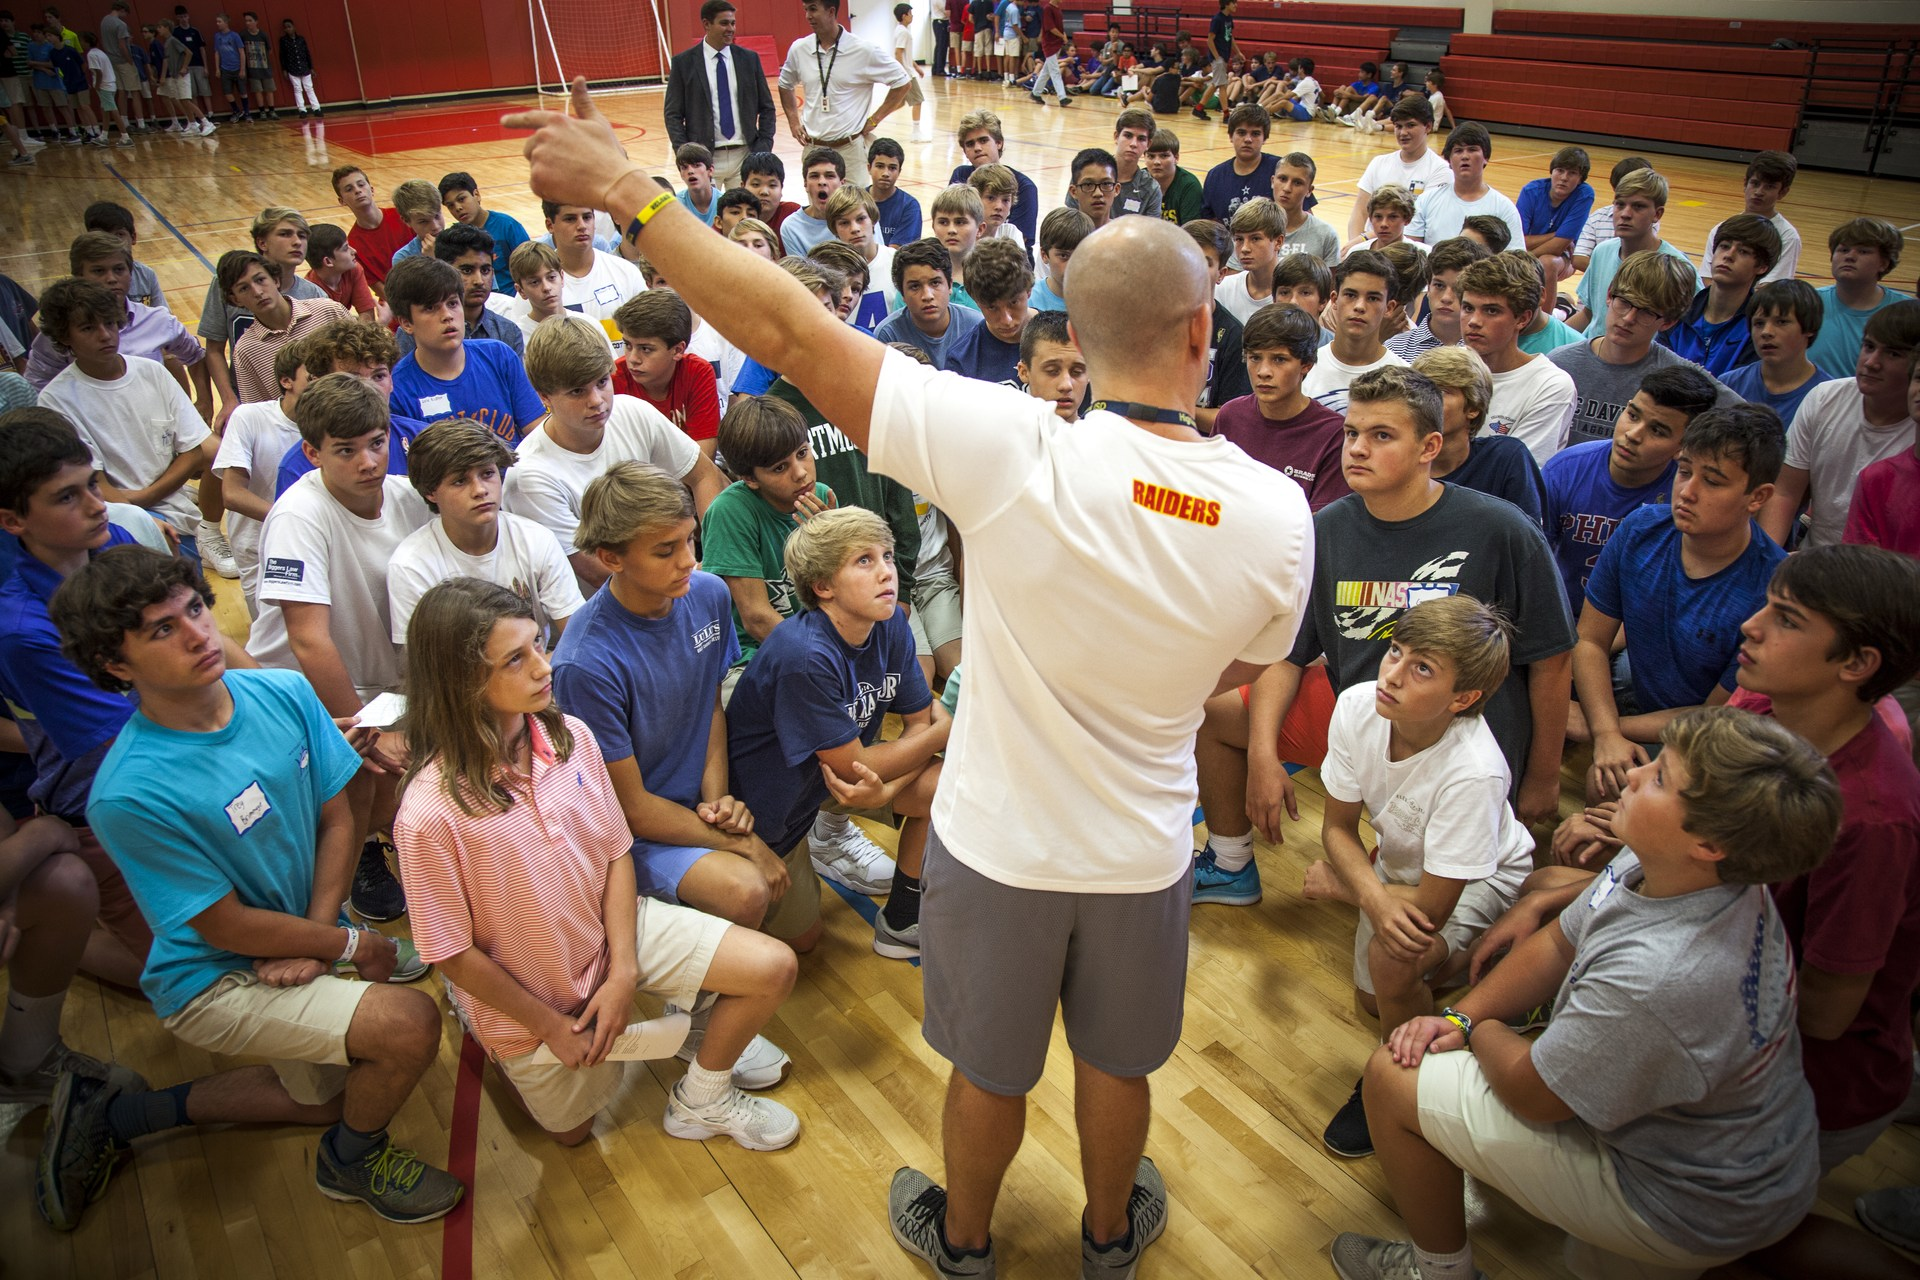 A coach talks with his students in the gymnasium.